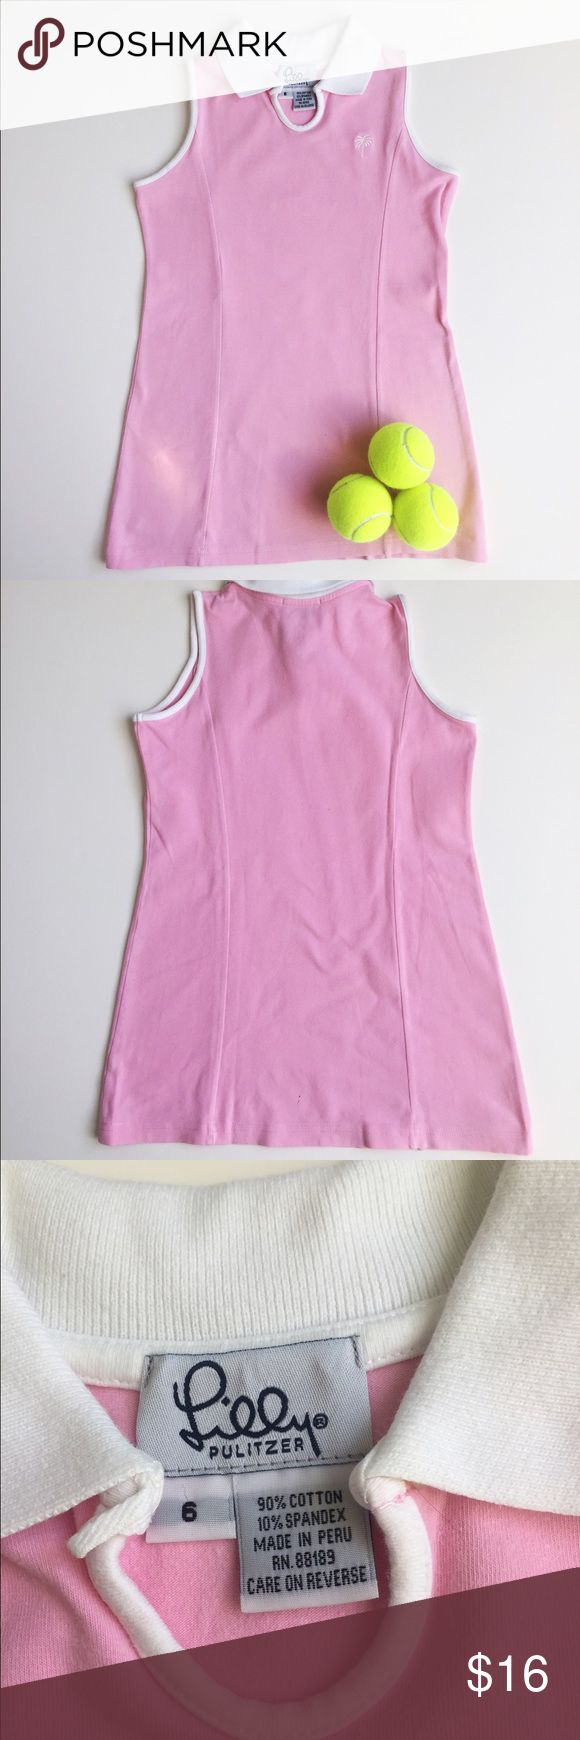 🎾 Lilly Pulitzer girl's tennis dress. Lilly Pulitzer girl's pink and white sleeveless dress.  My daughter wore it for tennis and it was so comfy and cute.  Small stain on back bottom part of dress. Barely noticeable. Other than that, dress is in very good condition. Lilly Pulitzer Dresses Casual